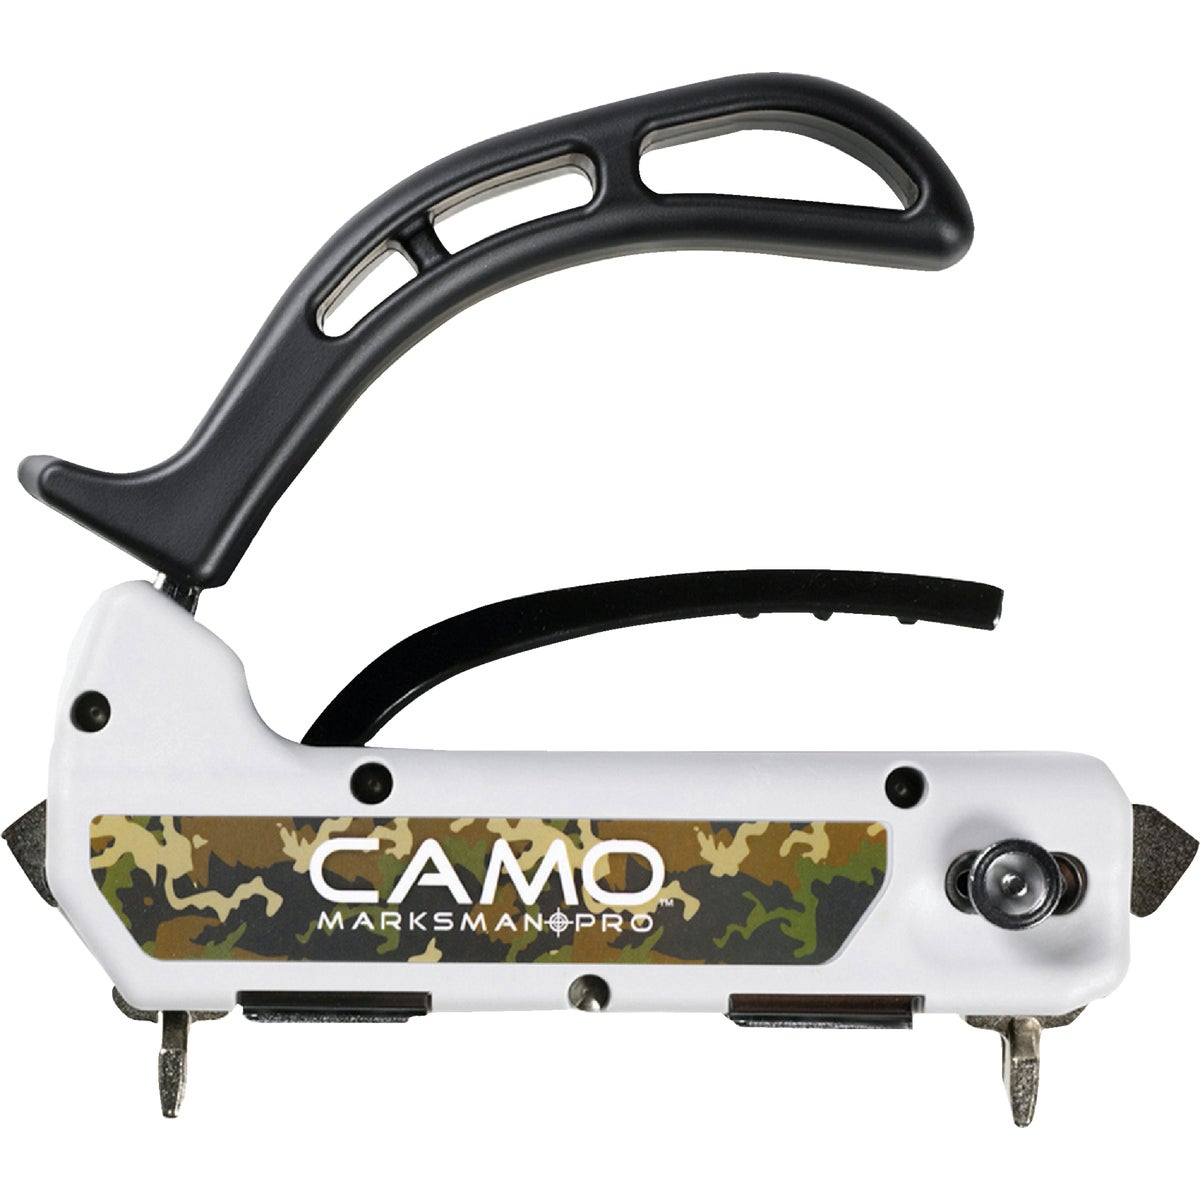 CAMO MARKSMAN PRO TOOL - 345001 by National Nail Corp